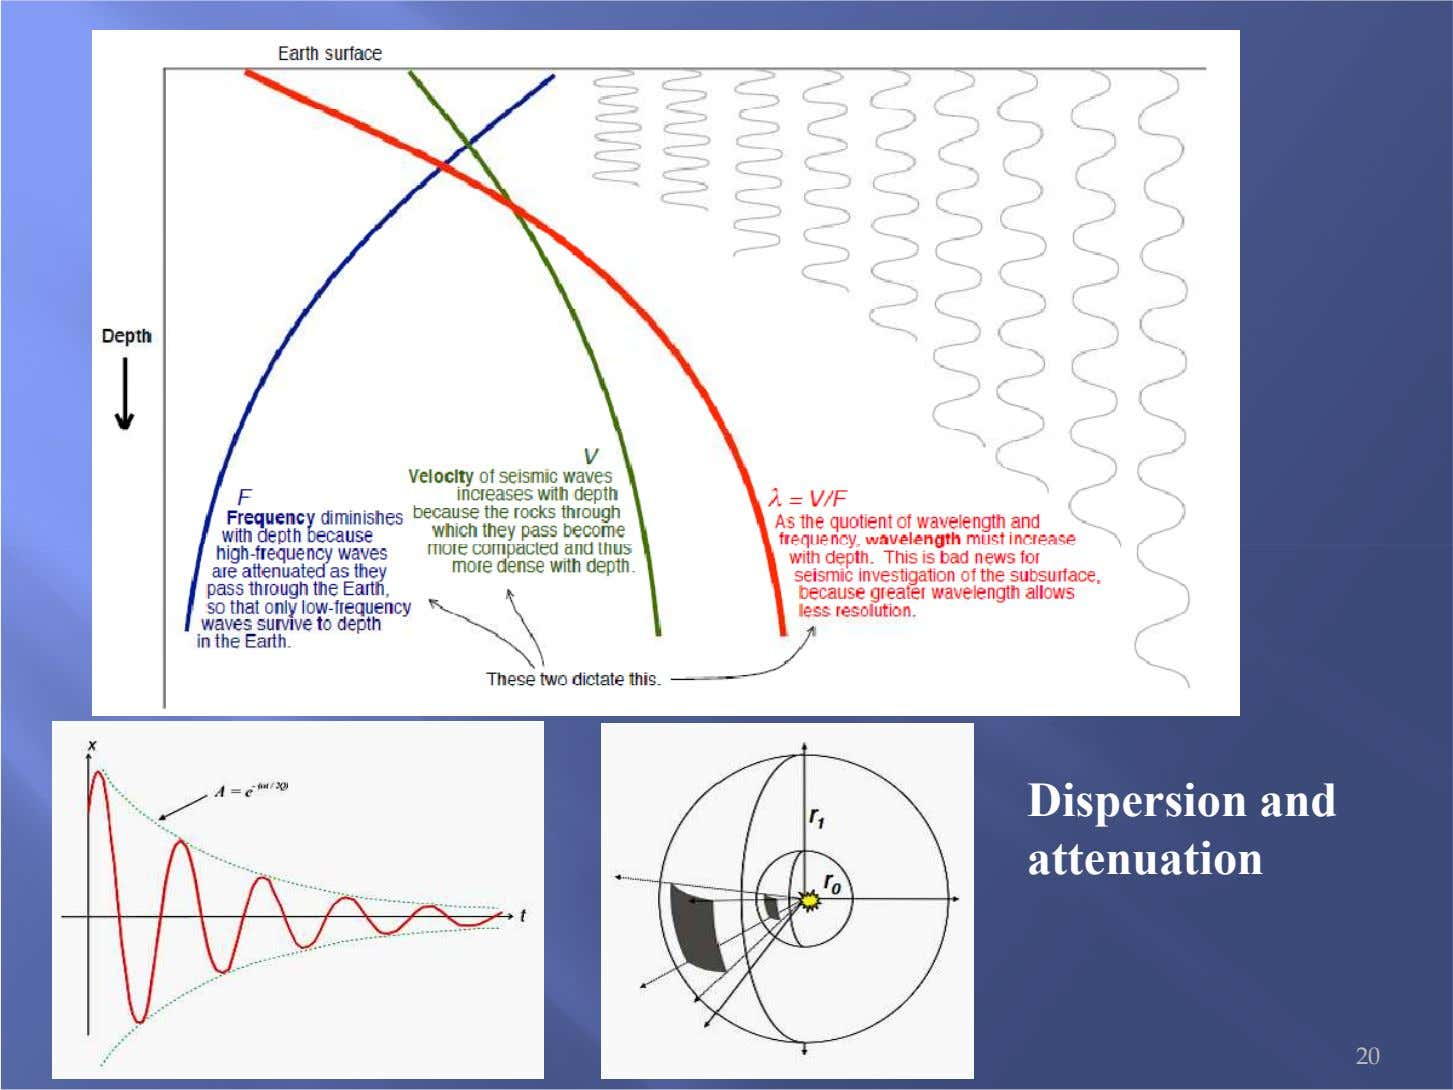 Dispersion and attenuation 20